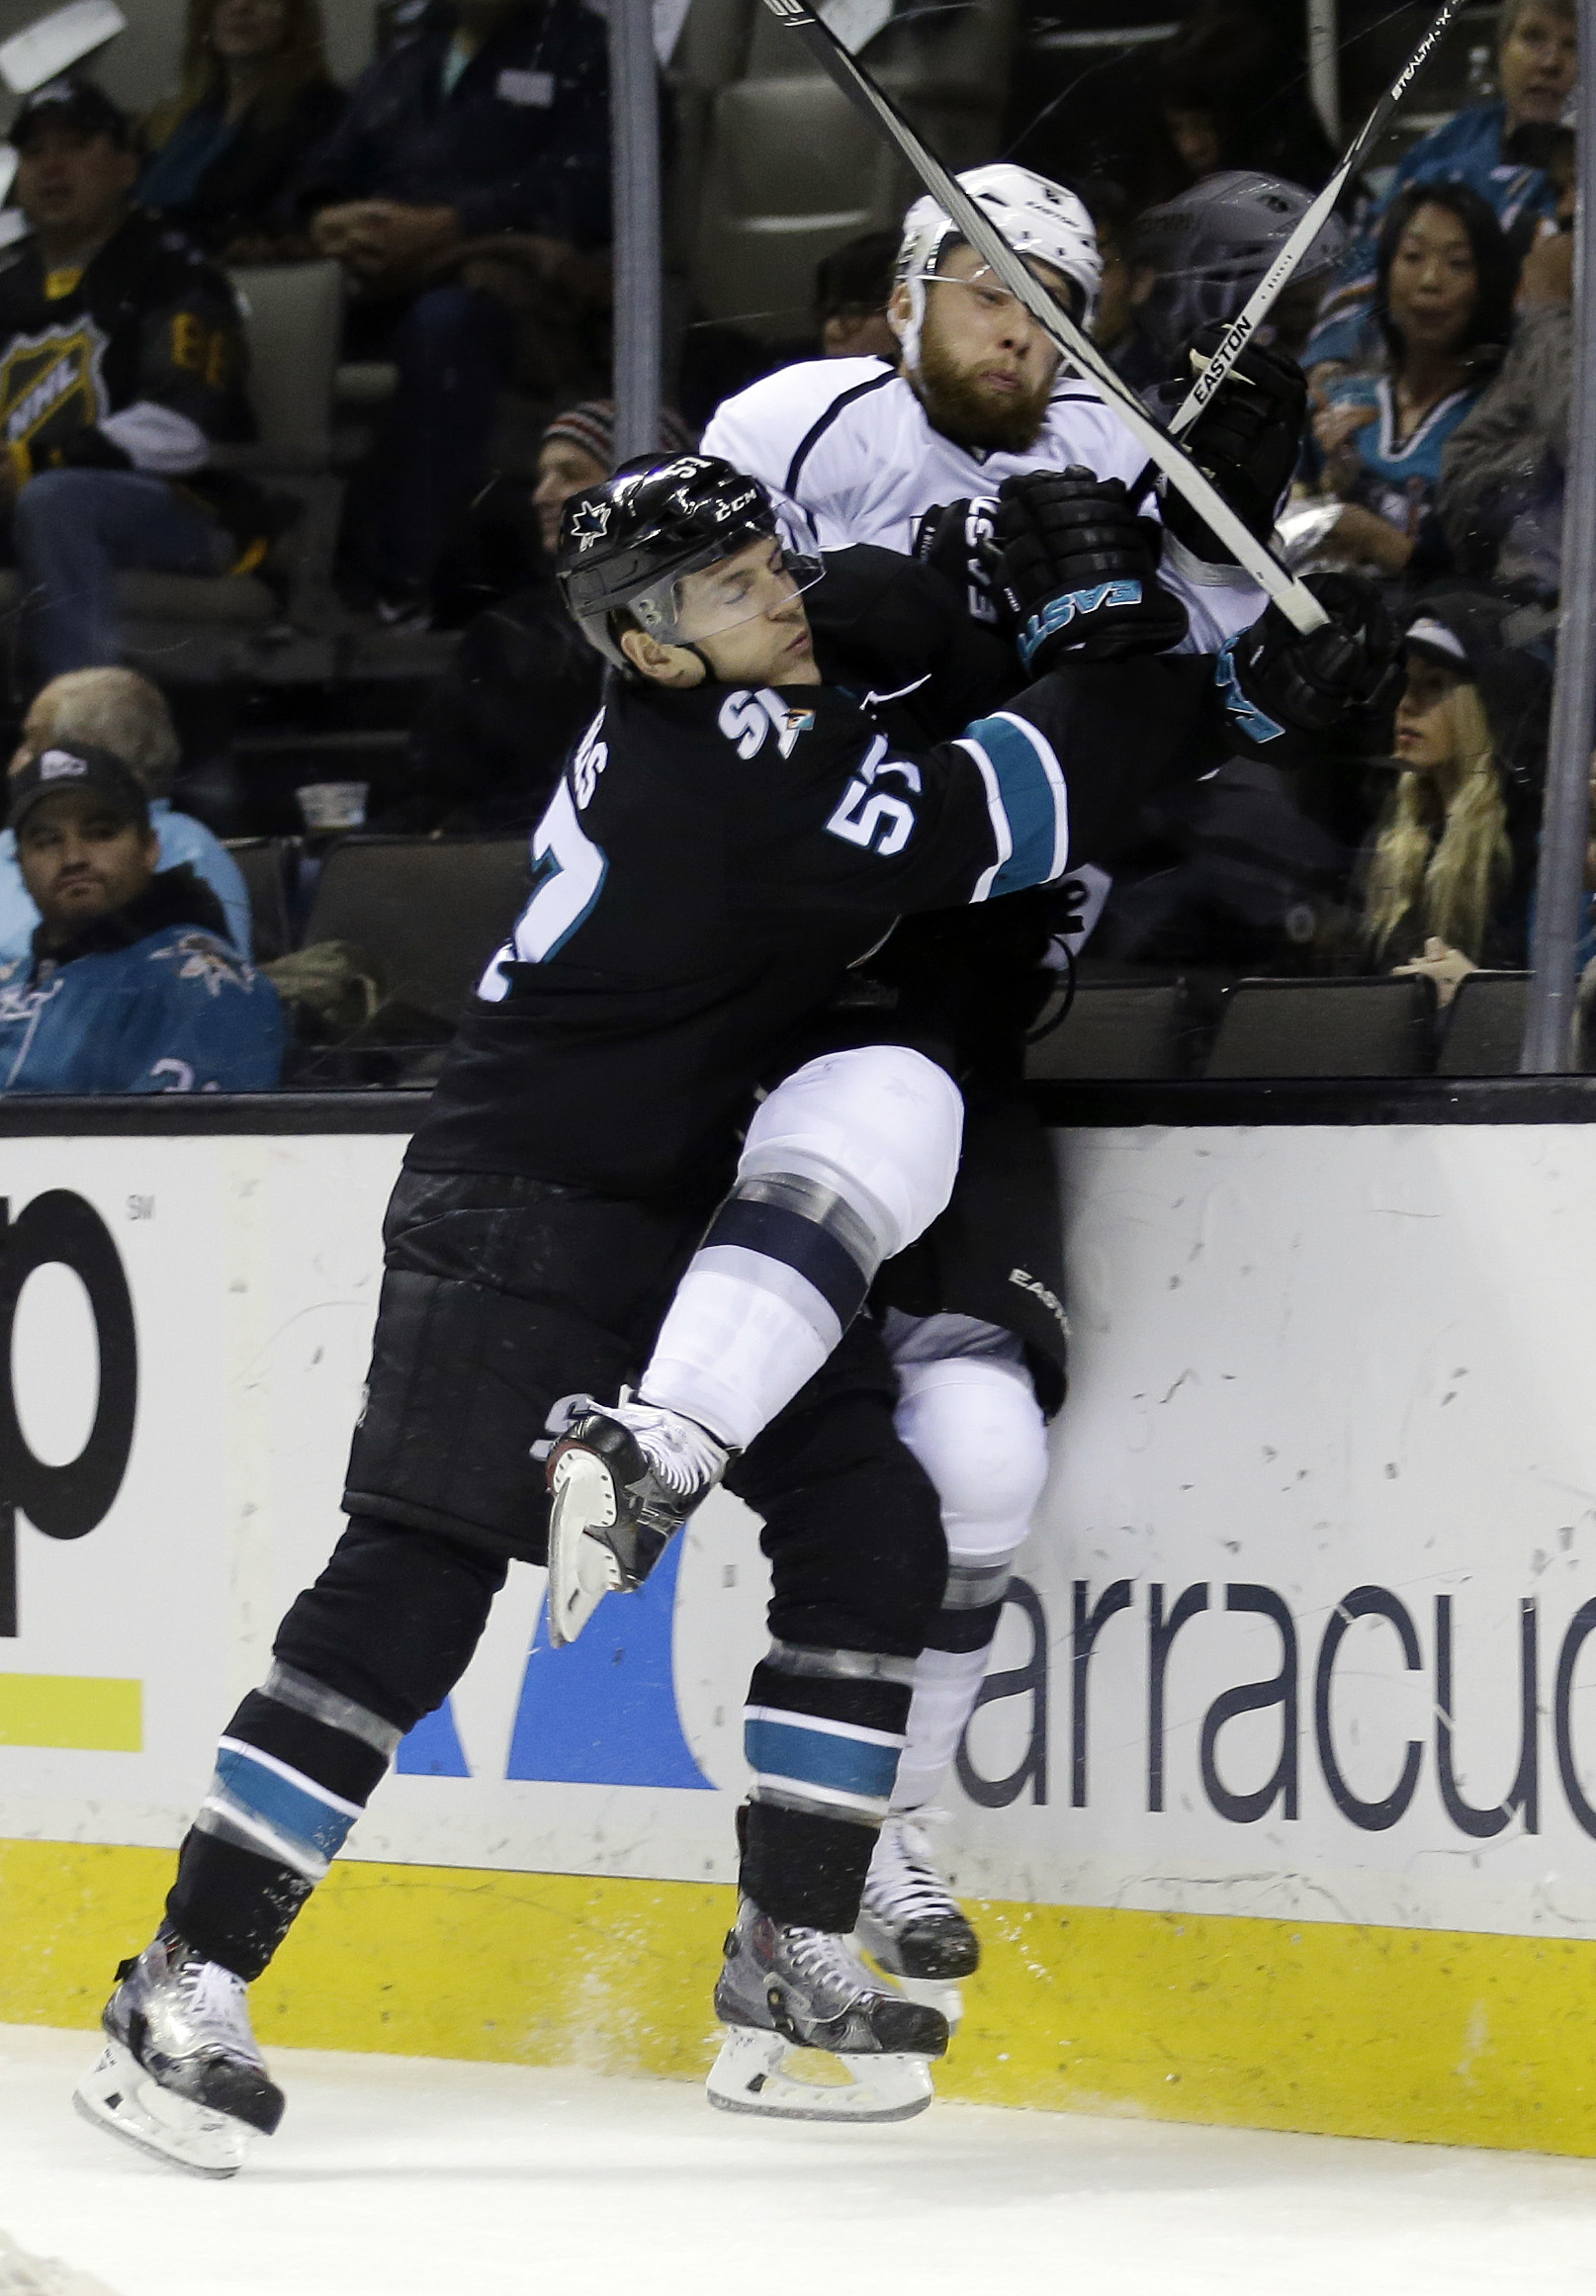 San Jose Sharks' Tommy Wingels, left, collides with Los Angeles Kings' Jake Muzzin during the first period of an NHL hockey game, Sunday, Jan. 24, 2016, in San Jose, Calif. (AP Photo/Marcio Jose Sanchez)